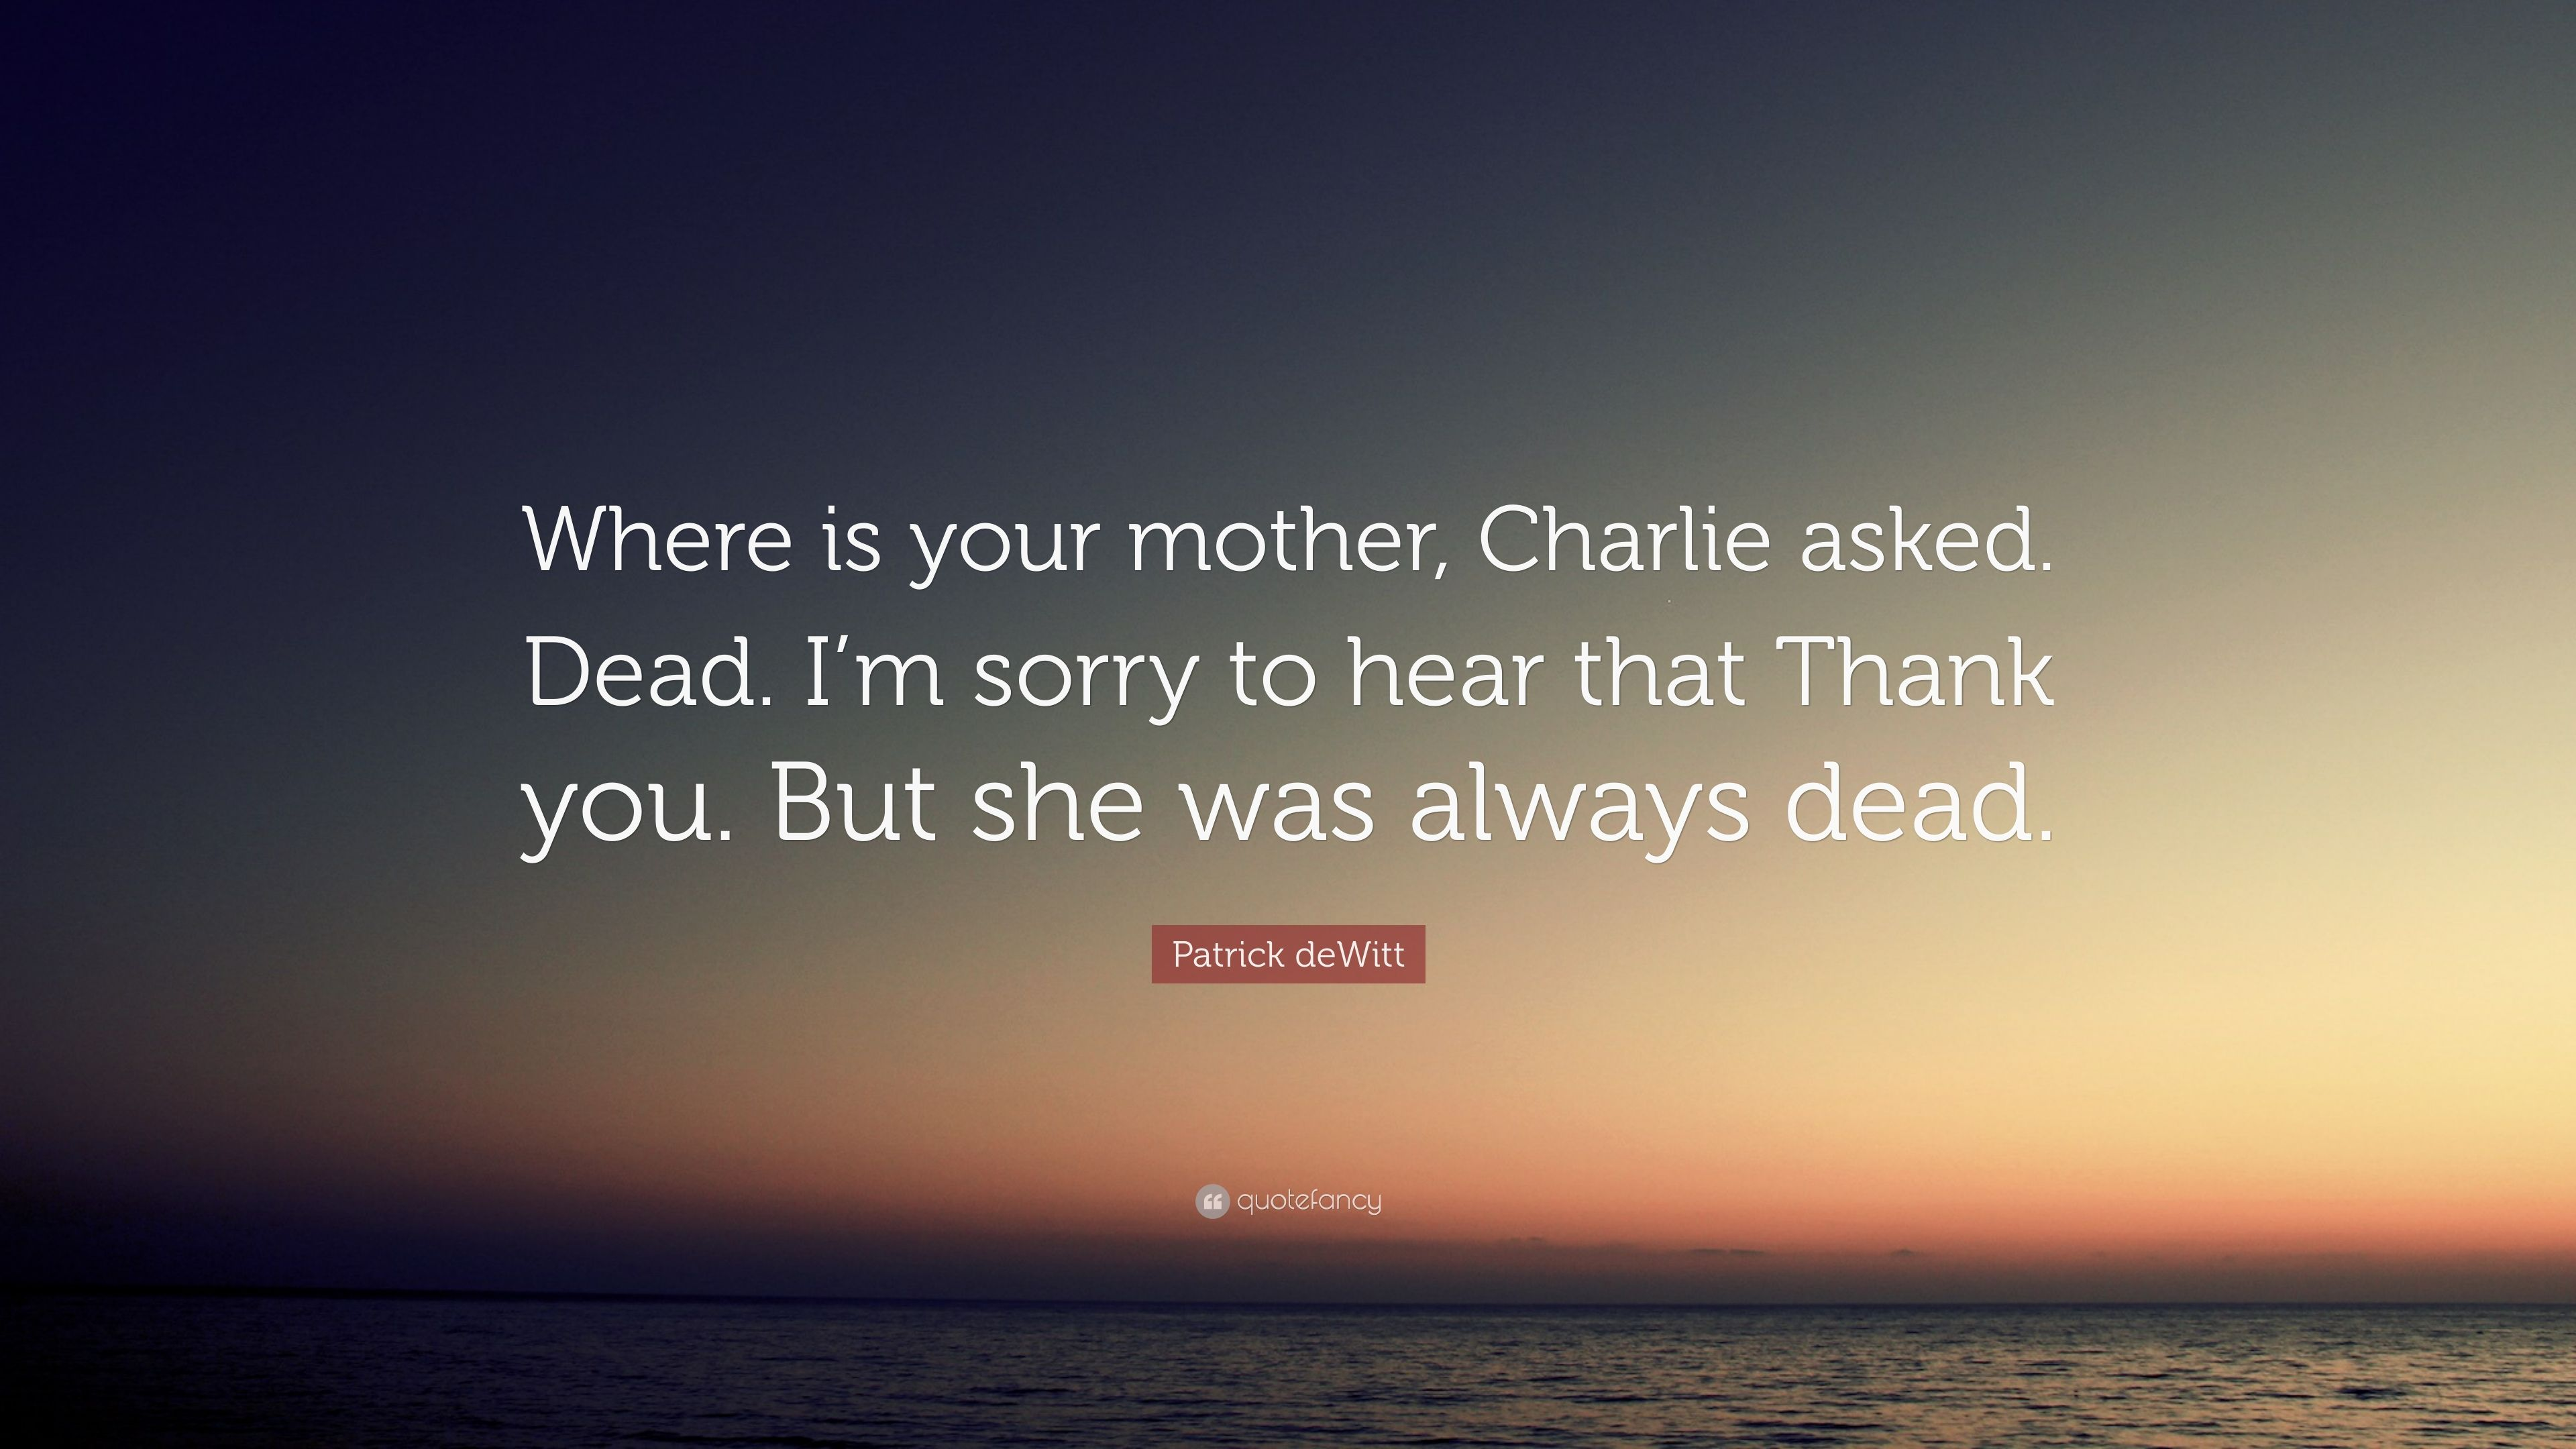 Exquisite 5220734 Patrick Dewitt Quote Where Is Your Mor Charlie Asked Dead I M Sorry To Hear That Meme Sorry To Hear That German dpreview Sorry To Hear That